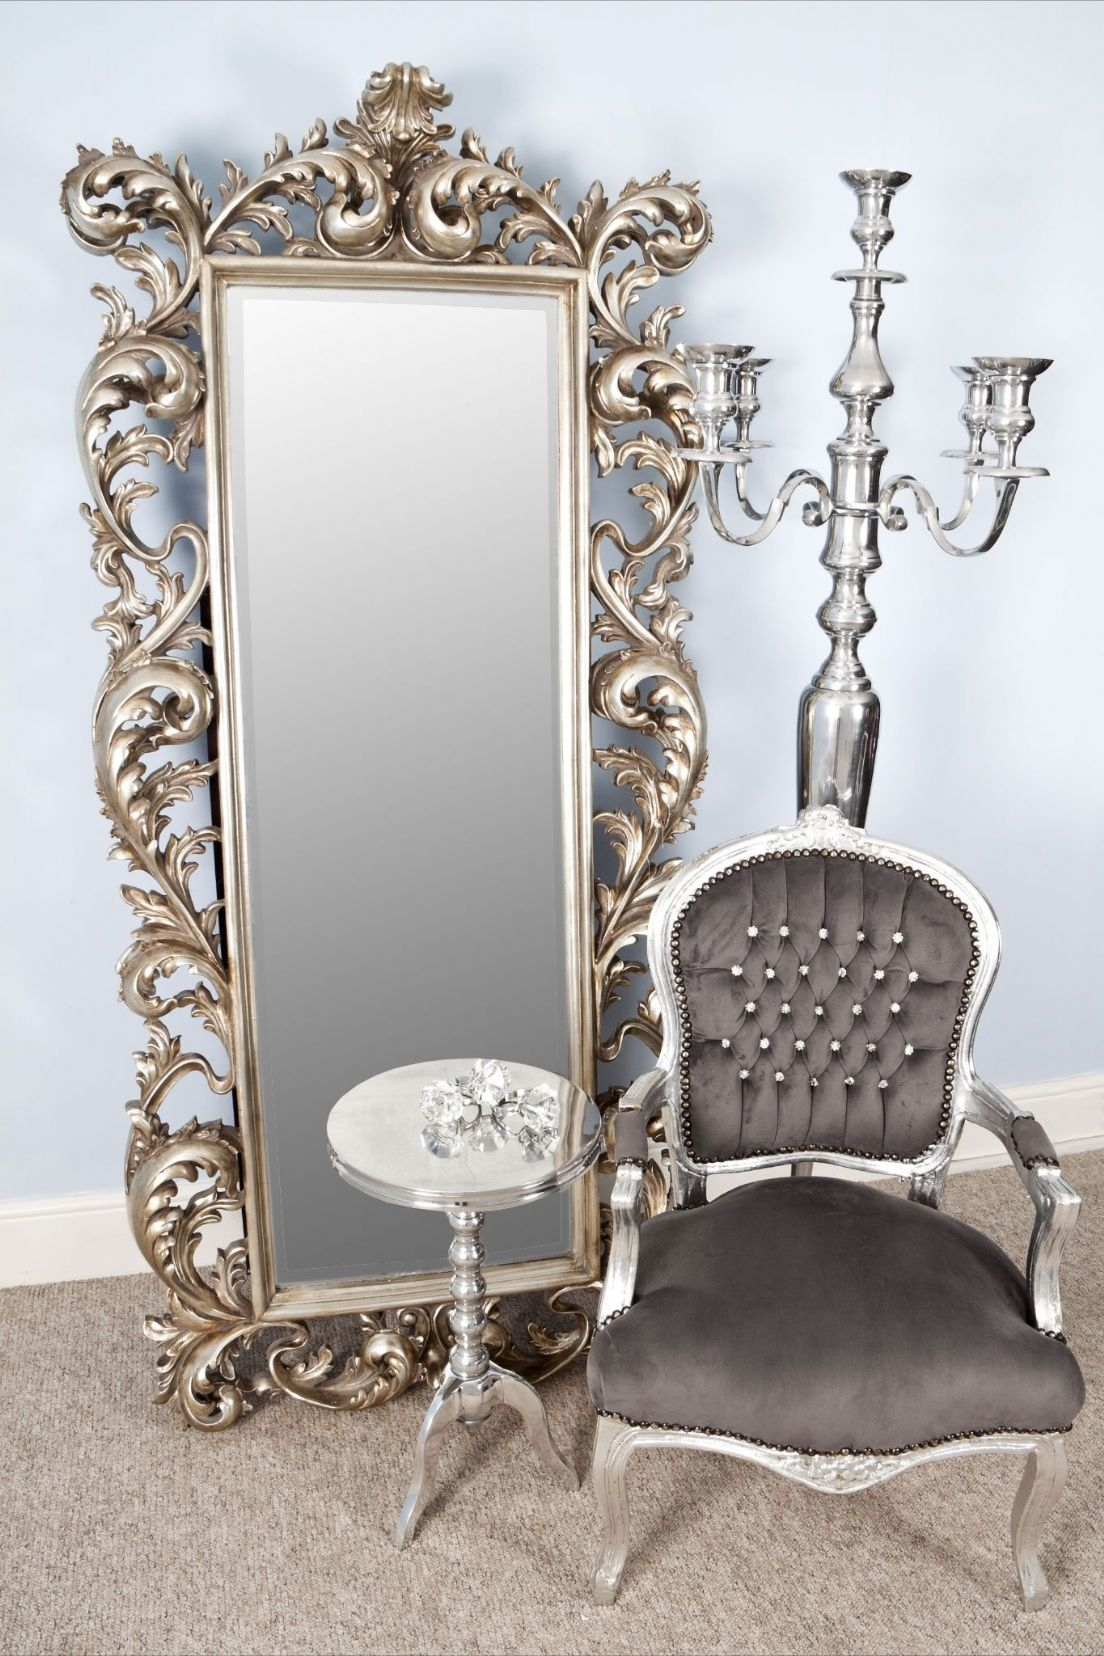 Nita Extra Large Silver Mirror 192 X 86 X 10 Cm Exclusive Mirrors With Regard To Rococo Style Mirrors (Image 10 of 15)